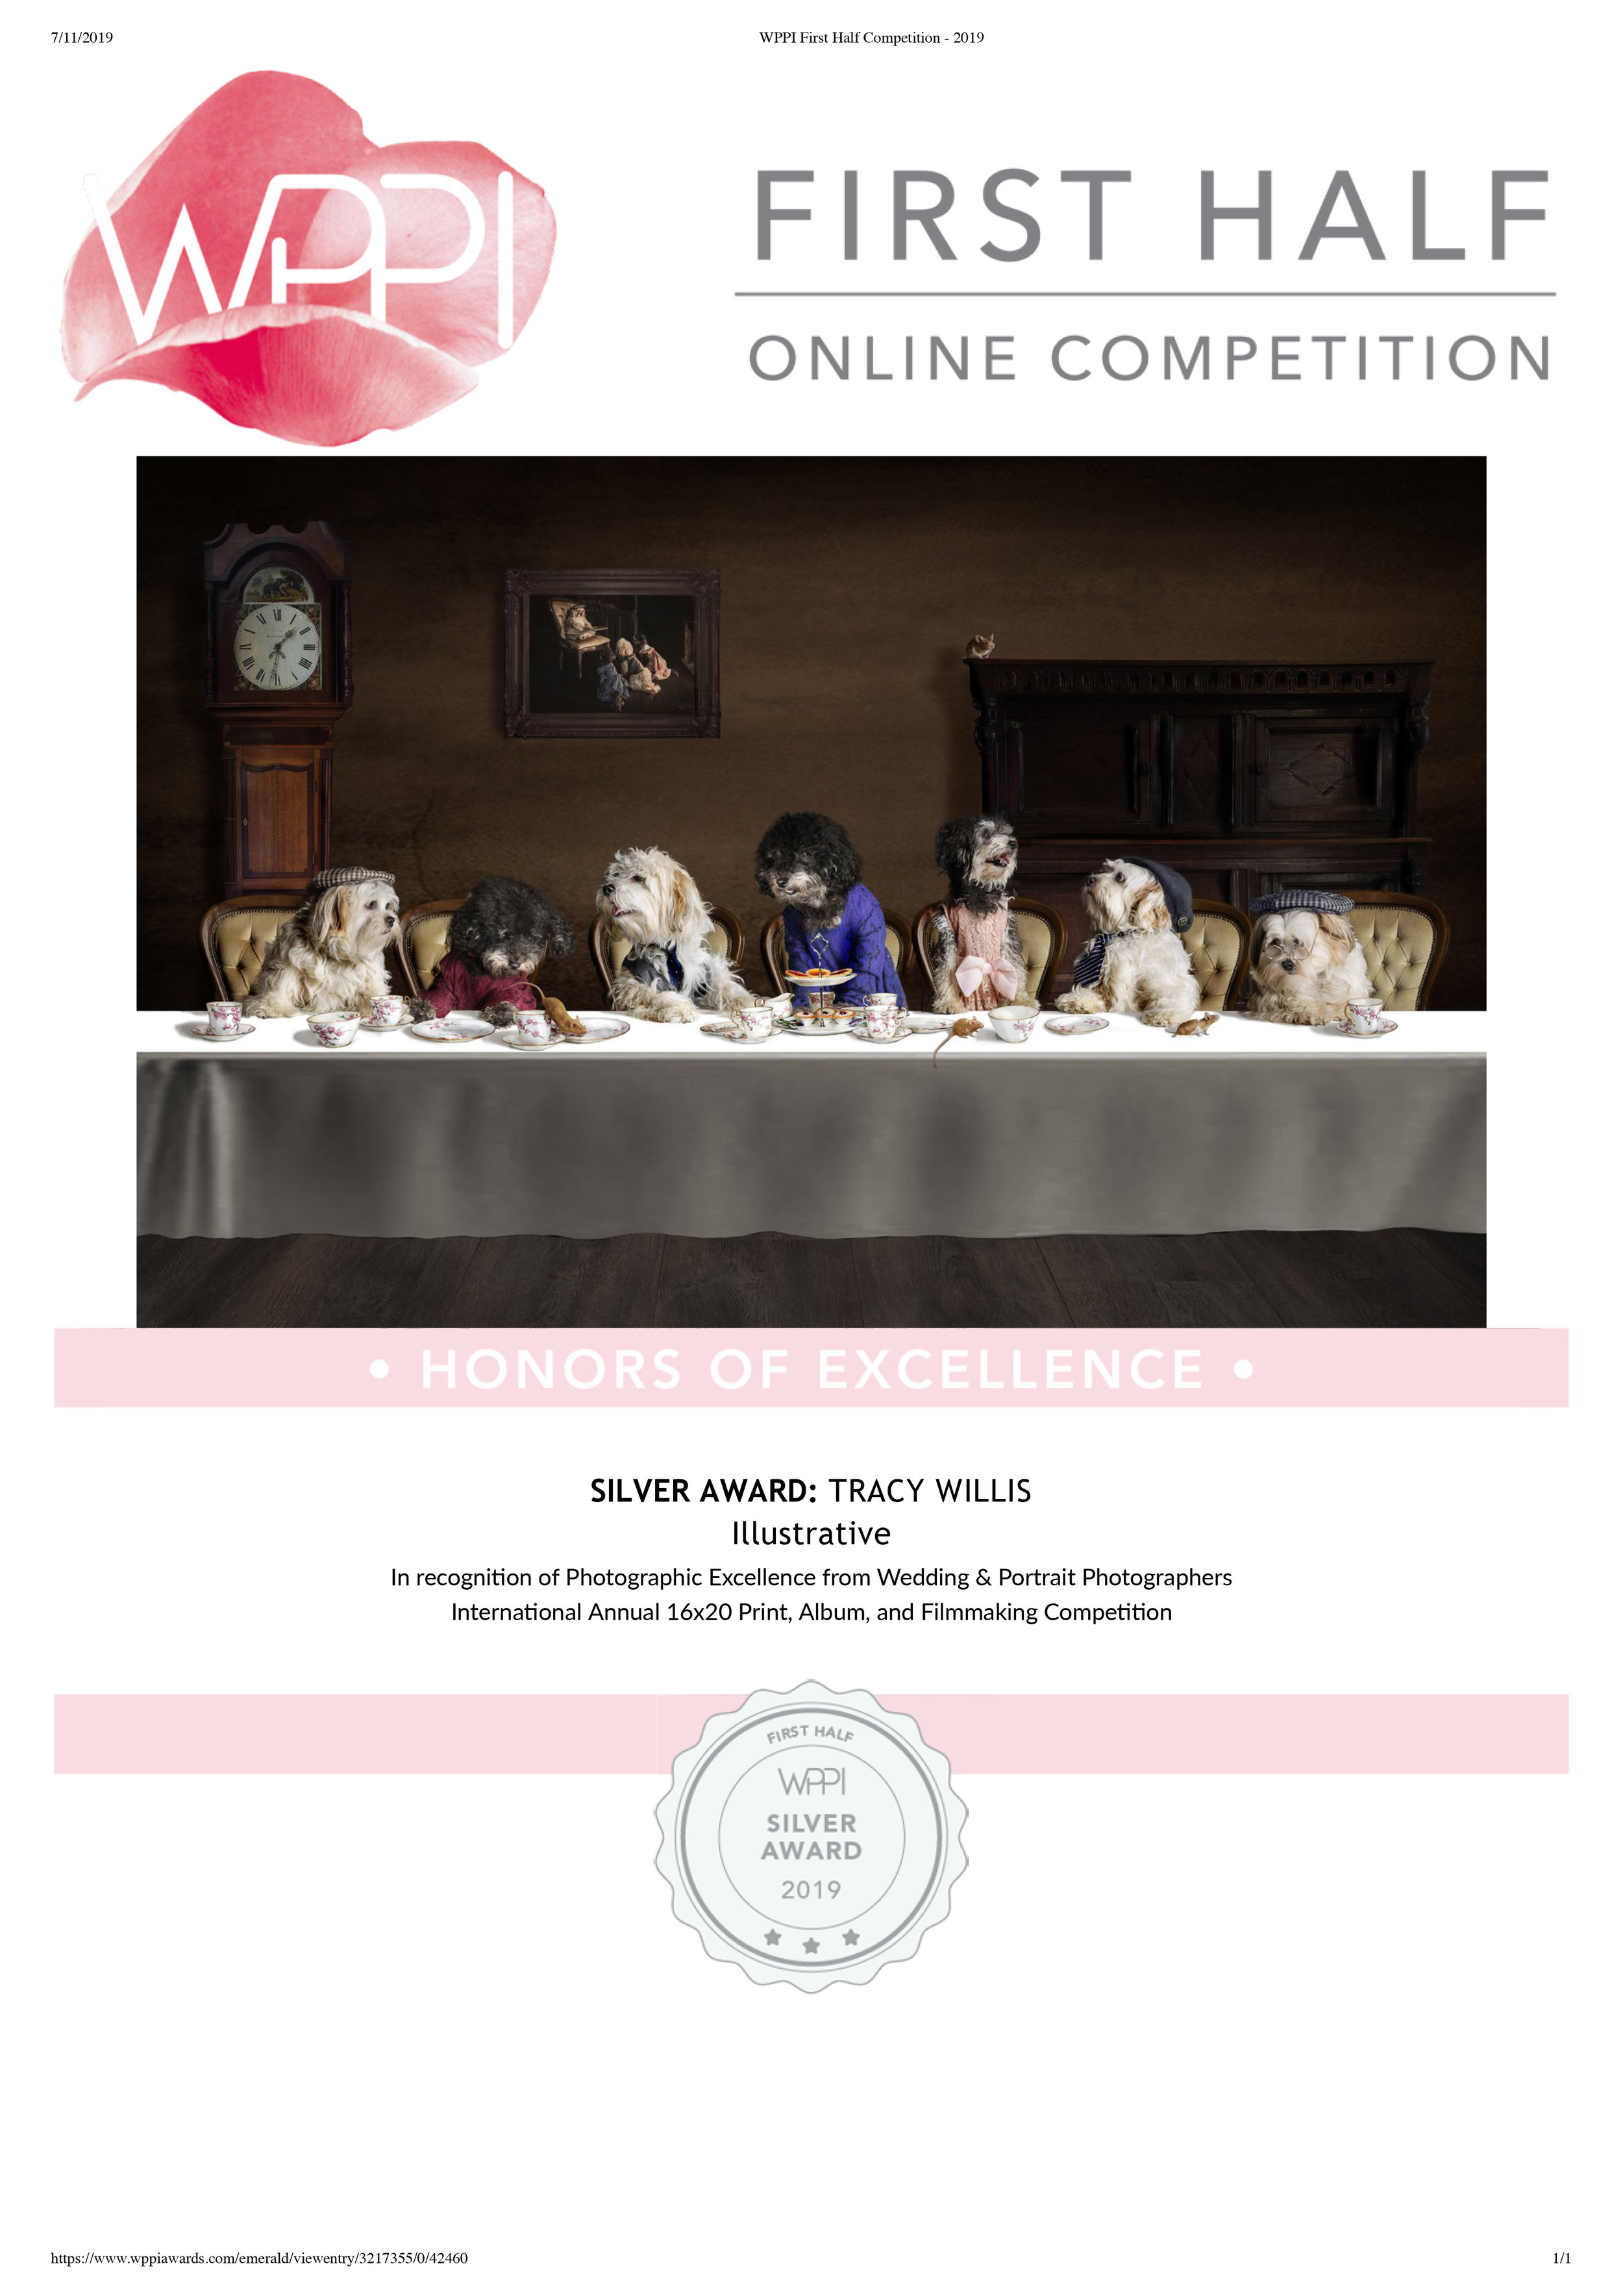 WPPI First Half Competition3 - 2019.jpg